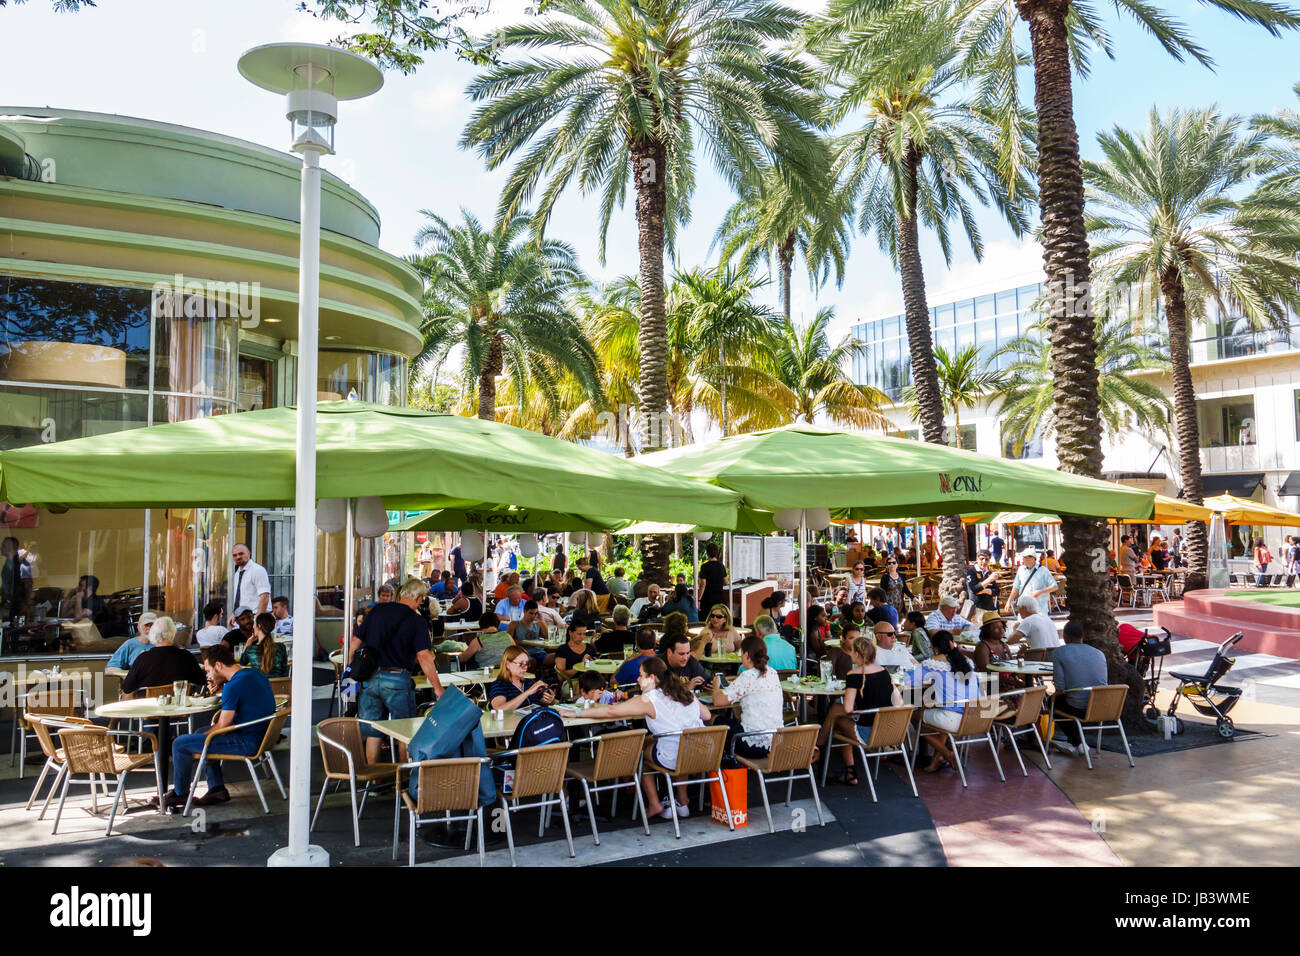 Miami Beach Florida centre commercial piétonnier Lincoln Road Nexxt Cafe restaurant al fresco salle à Photo Stock